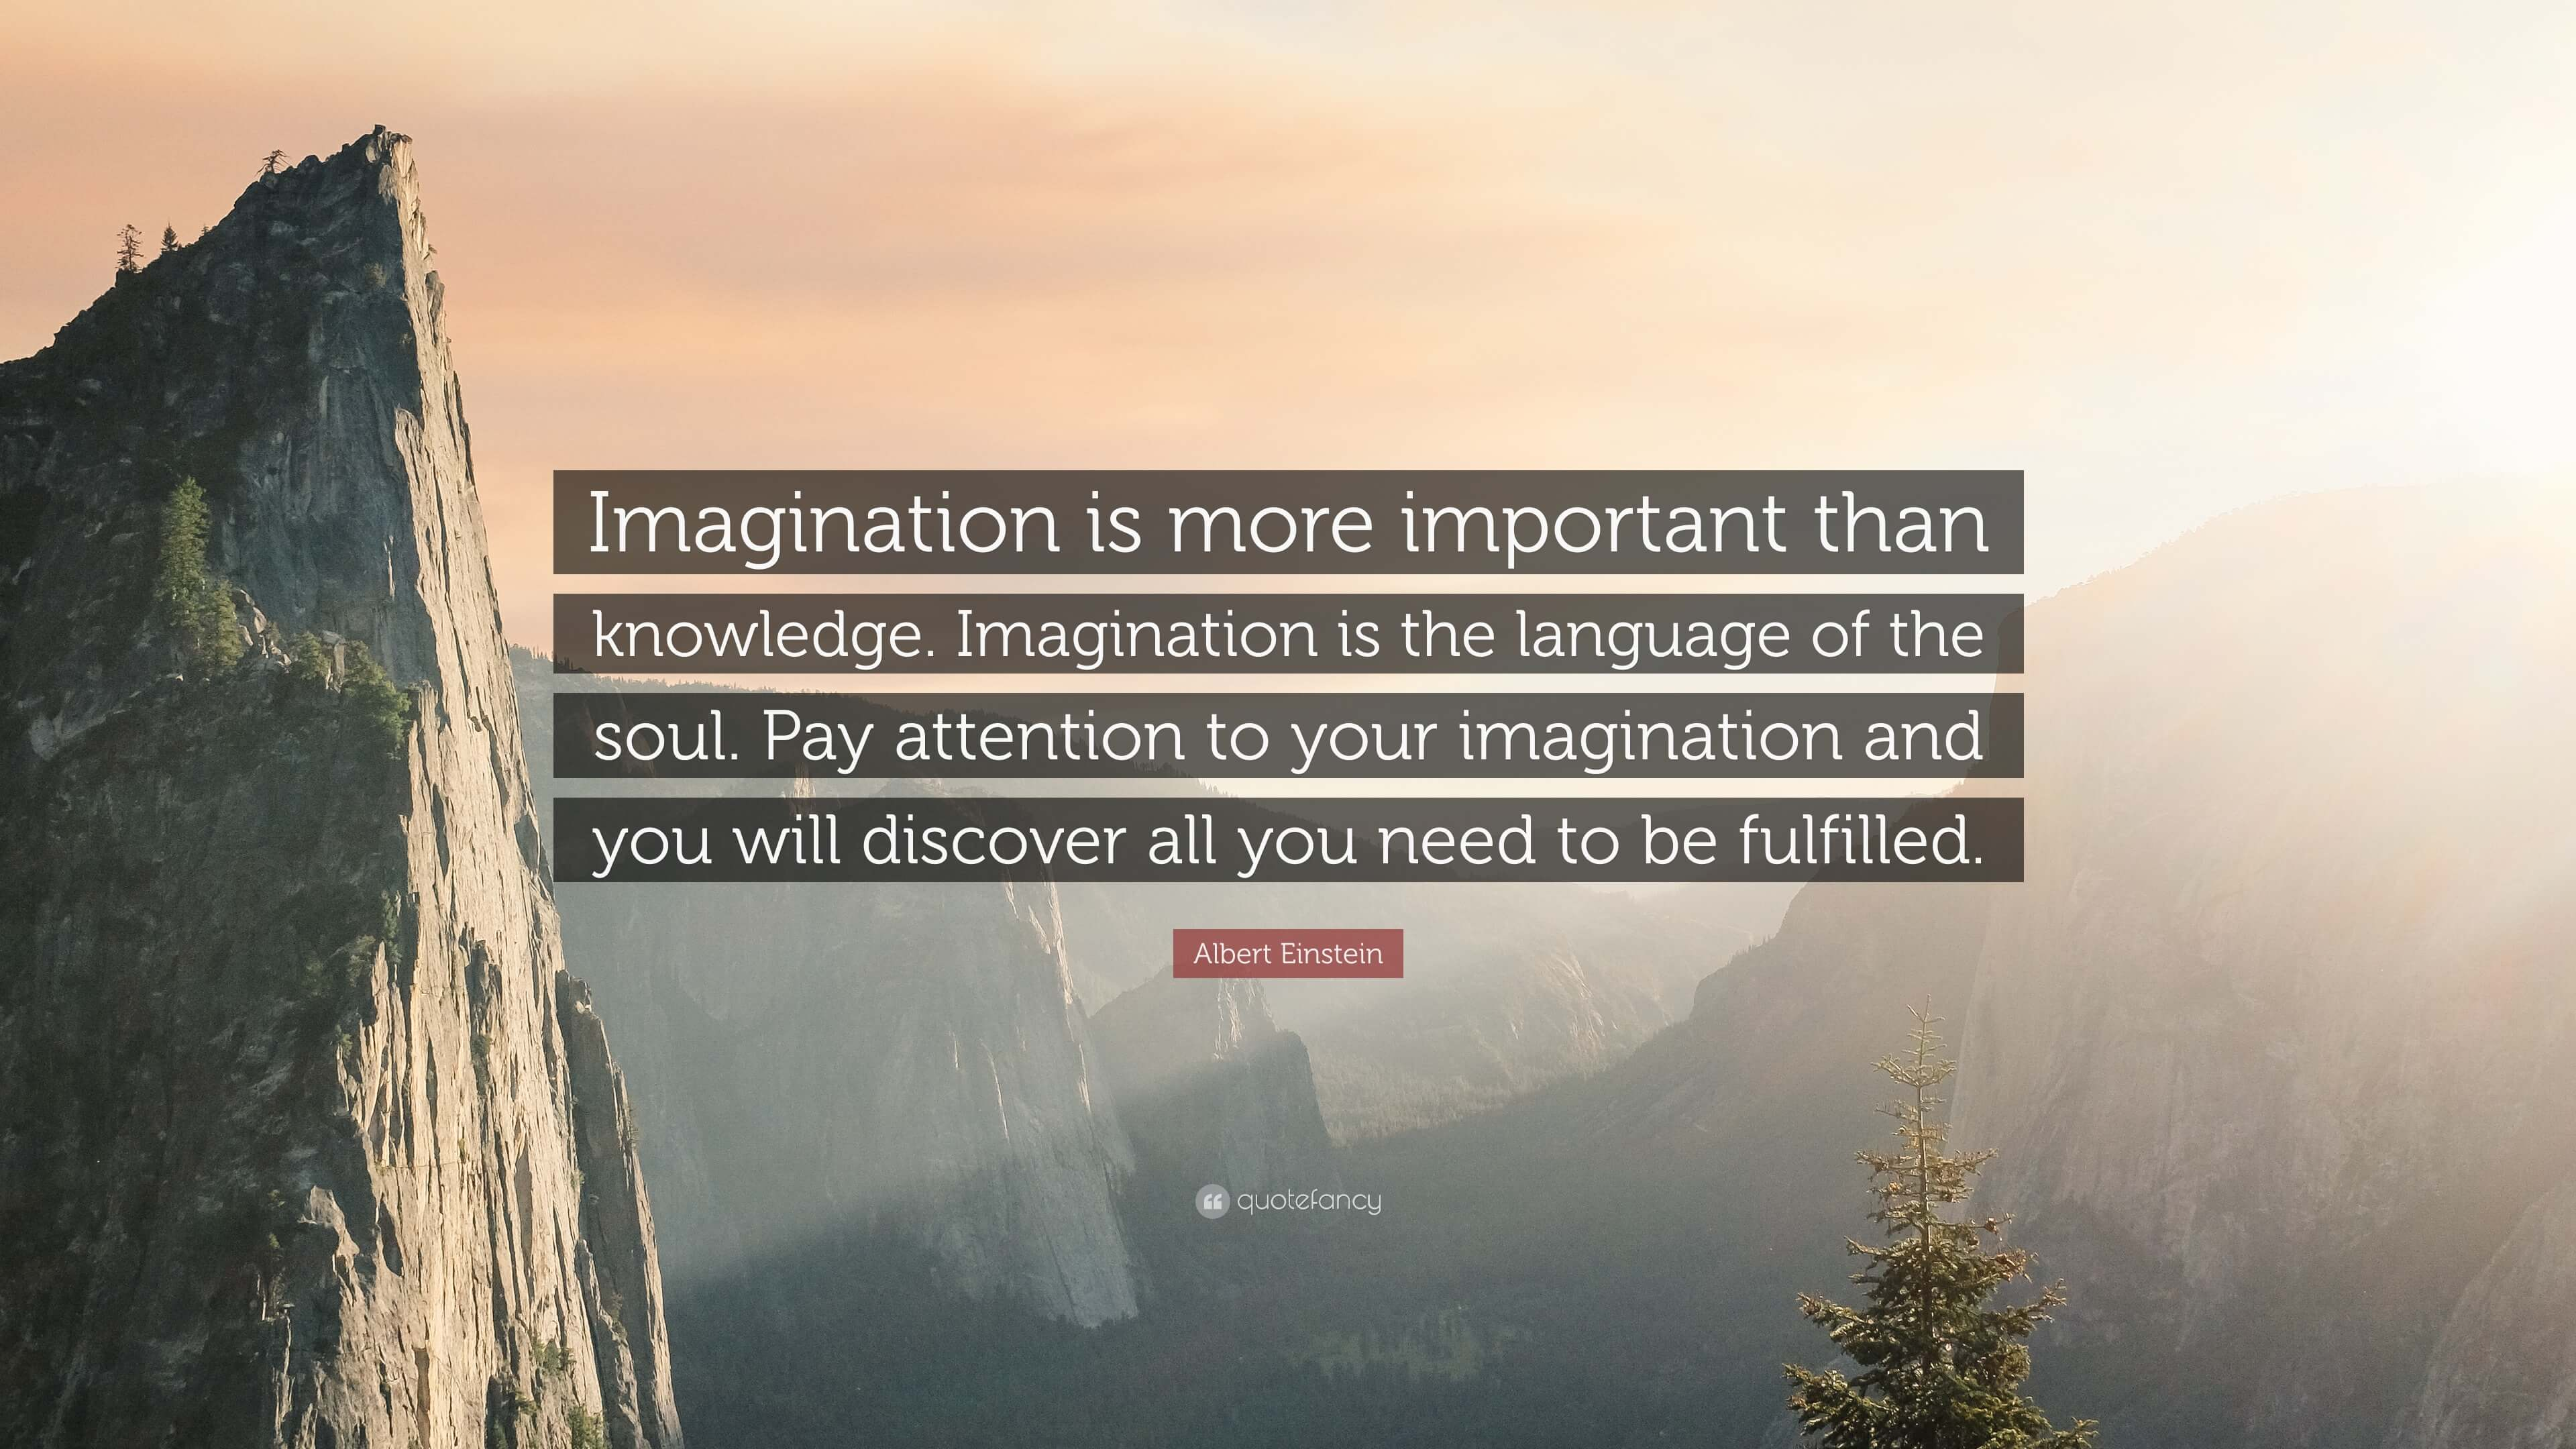 [Image] Imagination is more important than knowledge – albert Einstein